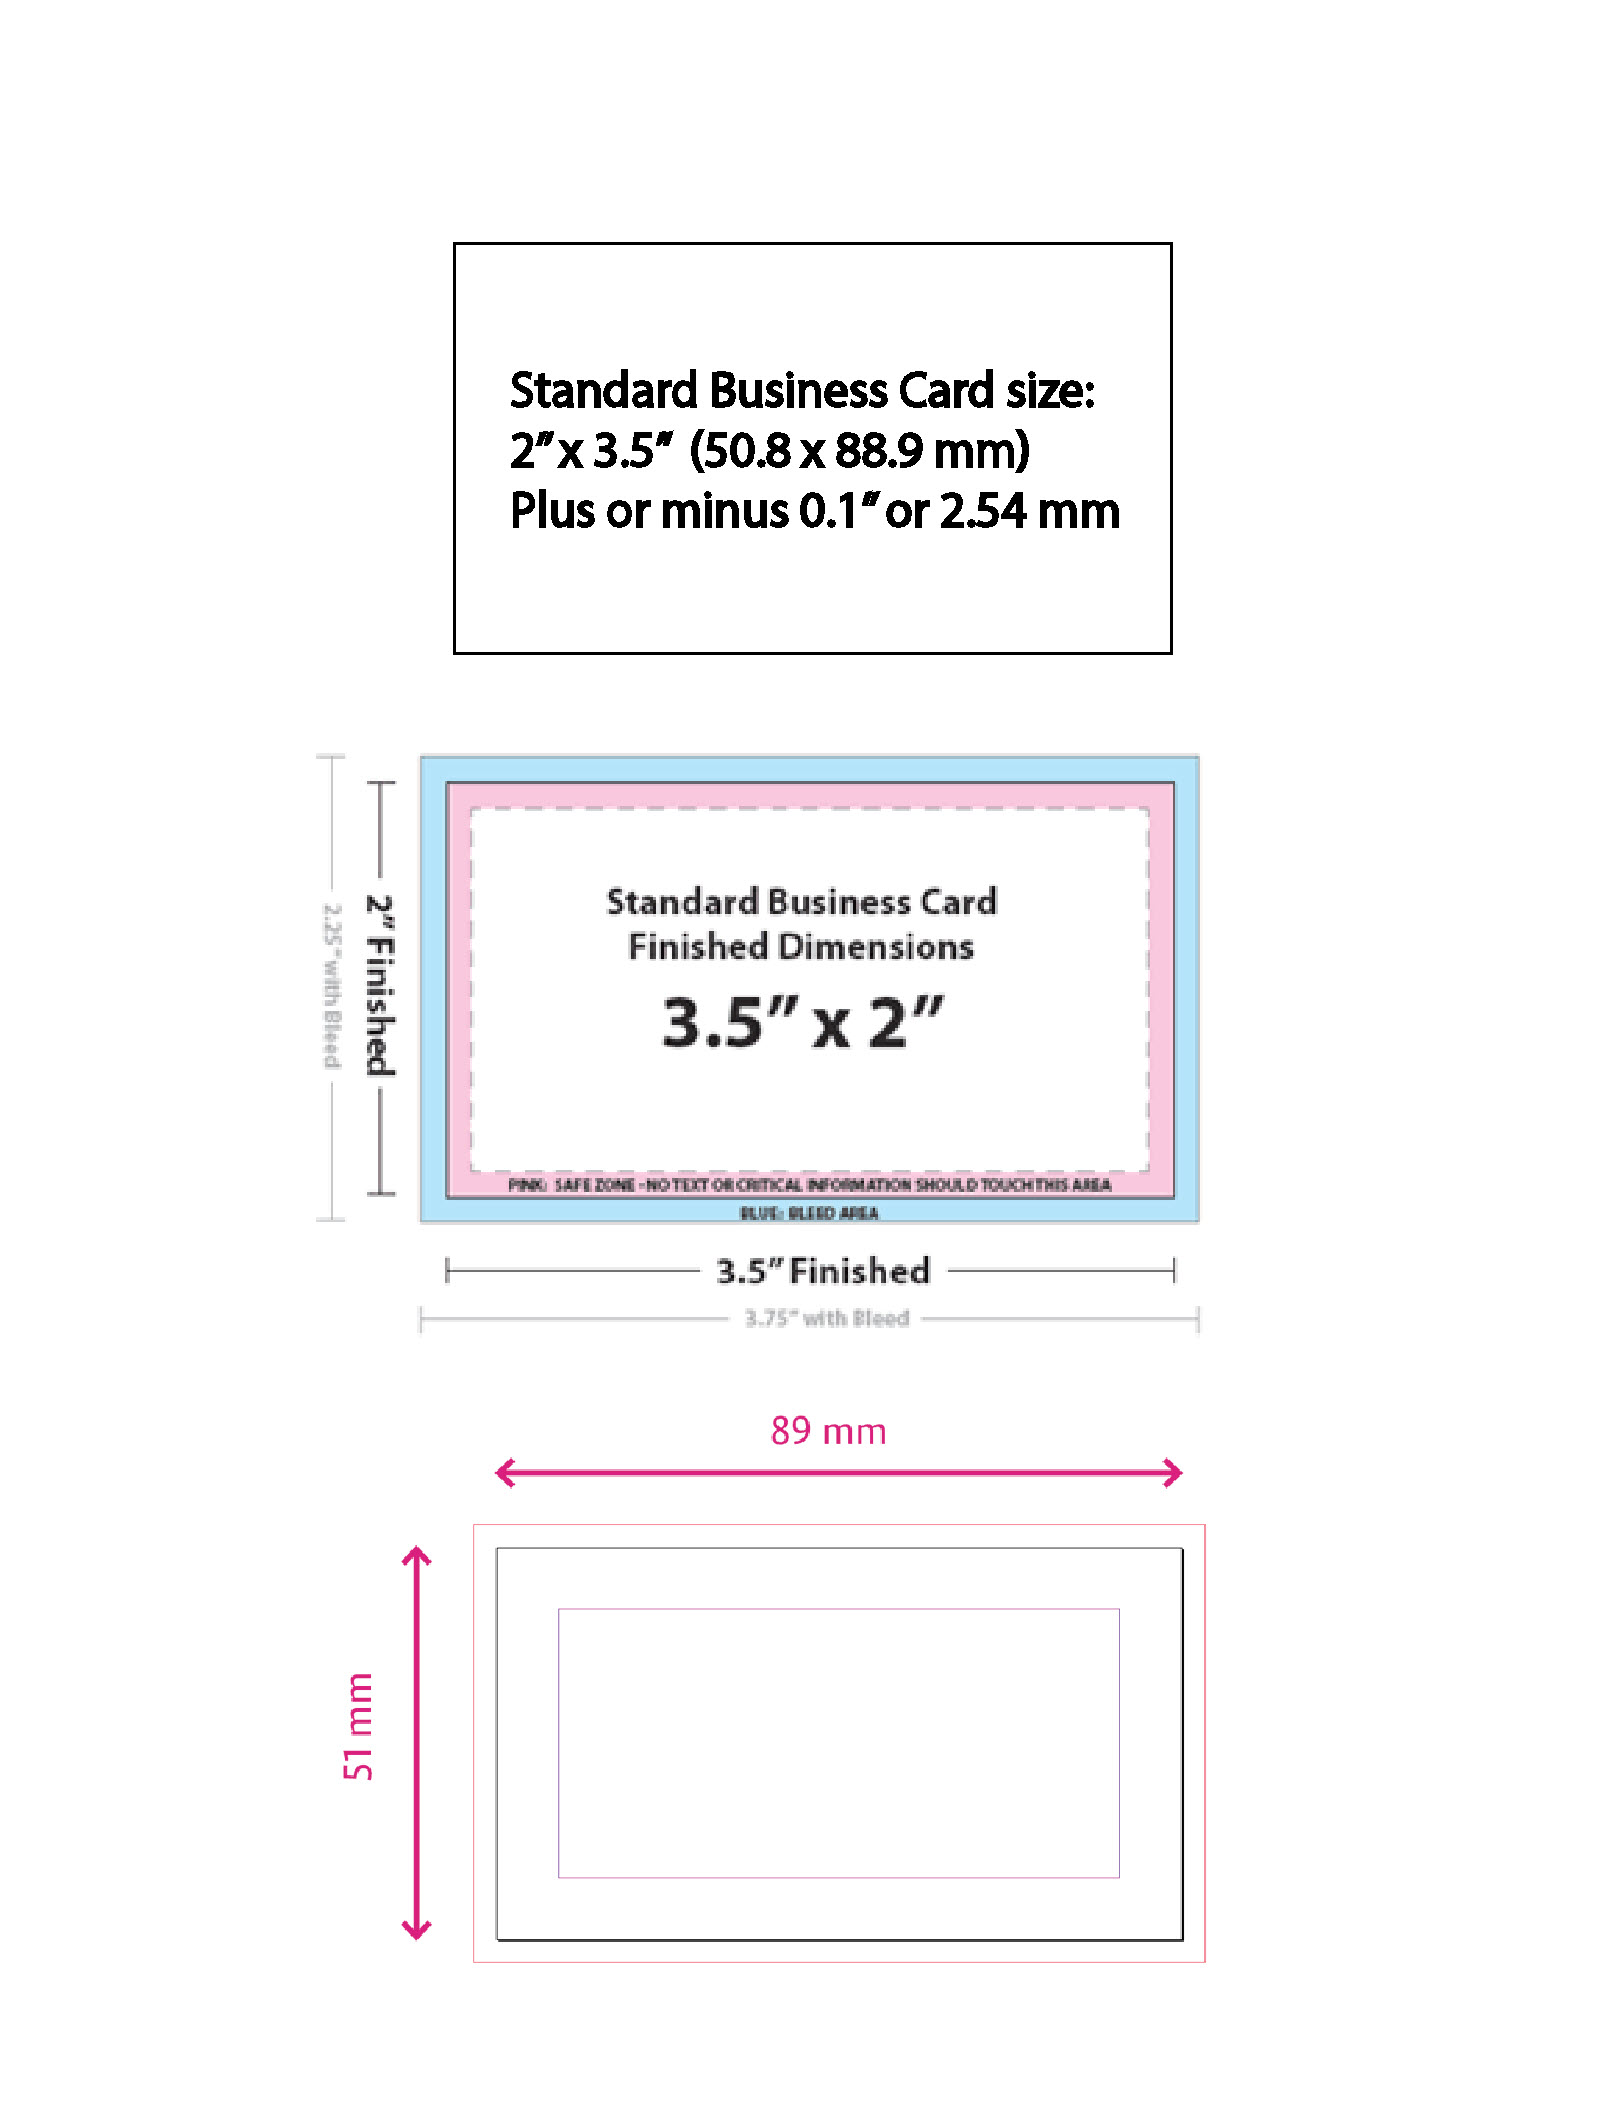 Cute standard business card size mm ideas business card ideas generous standard business card size cm gallery business card colourmoves Image collections